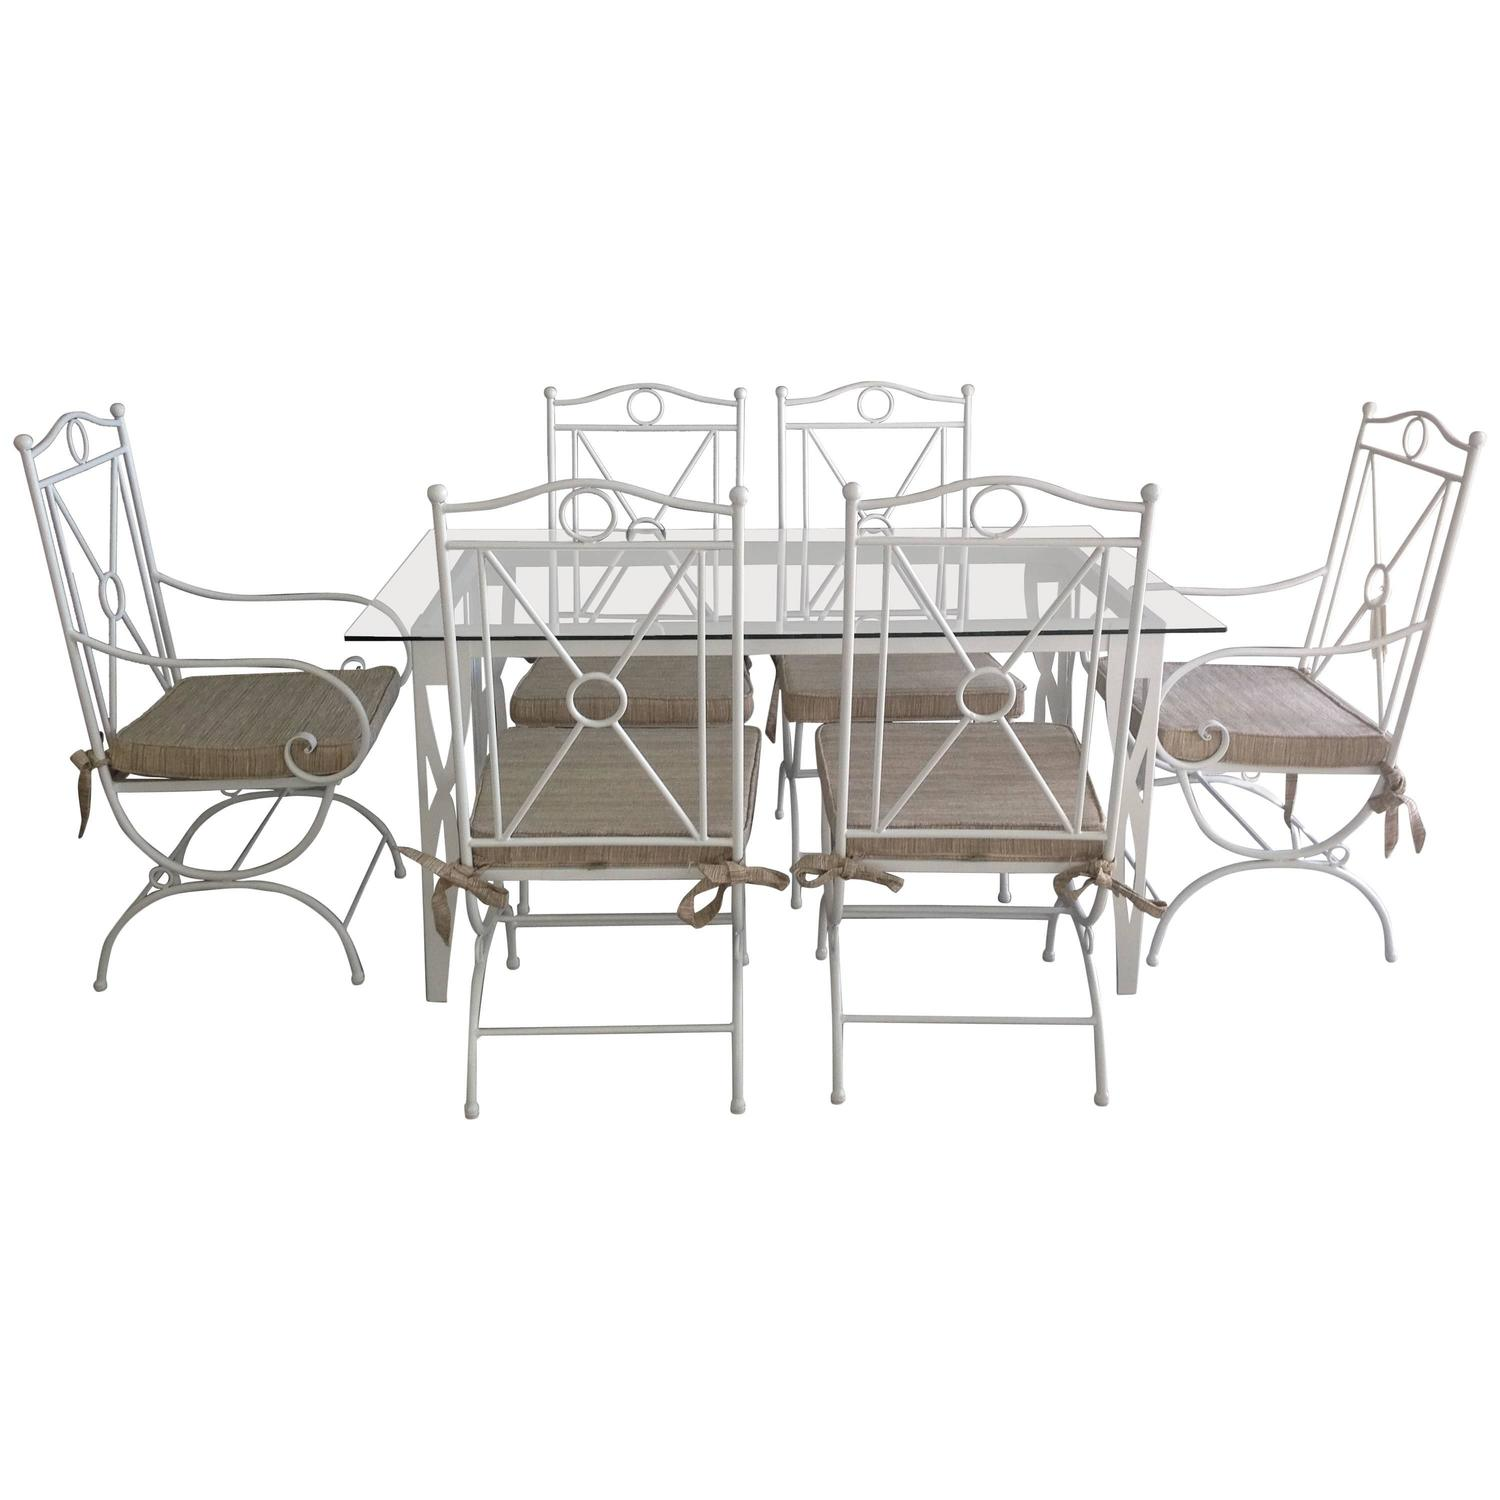 Handmade white wrought iron patio dining set garden furniture for sale at 1stdibs Metal garden furniture sets